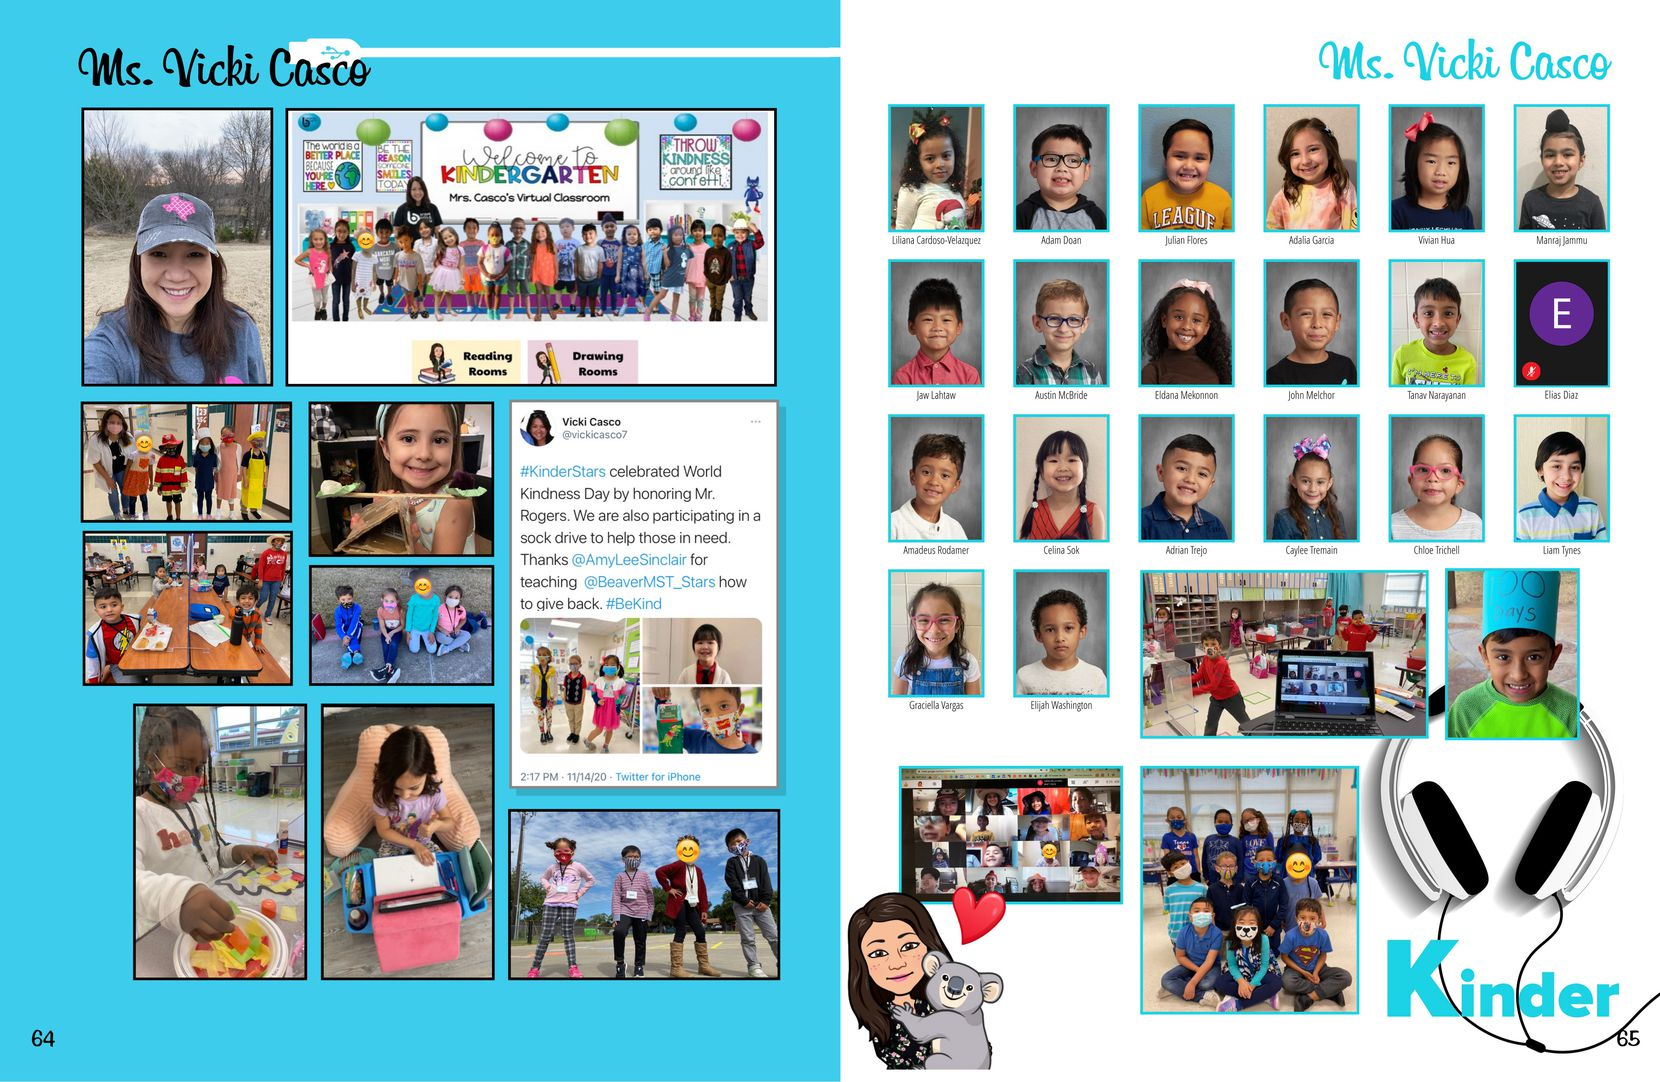 Vicki Casco teaches kindergarten at Beaver Technology Center. As with most other class spreads in the yearbook, Tevis Diaz included a Bitmoji of Casco, a relevant teacher tweet, a Google Meets screenshot of the class, shot of the entire class photoshopped together, and photos of at-home learning moments. (Courtesy Tevis Diaz and TreeRing)